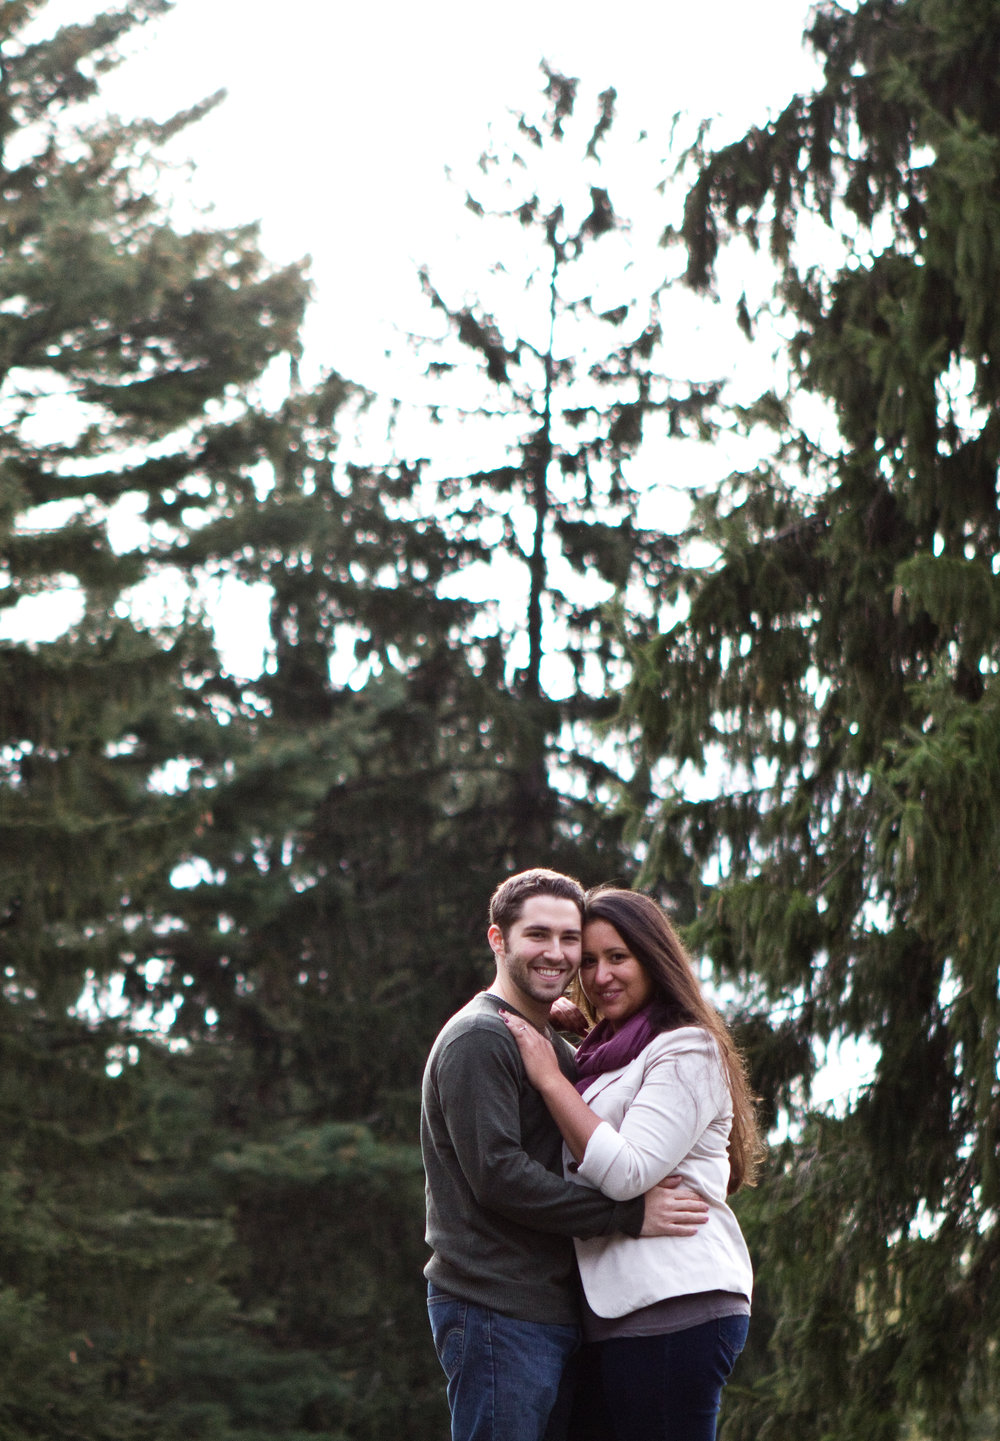 Ross and Renee deCordova Sculpture Park Lincoln Massachusetts Engagement Photographer Shannon Sorensen Photography